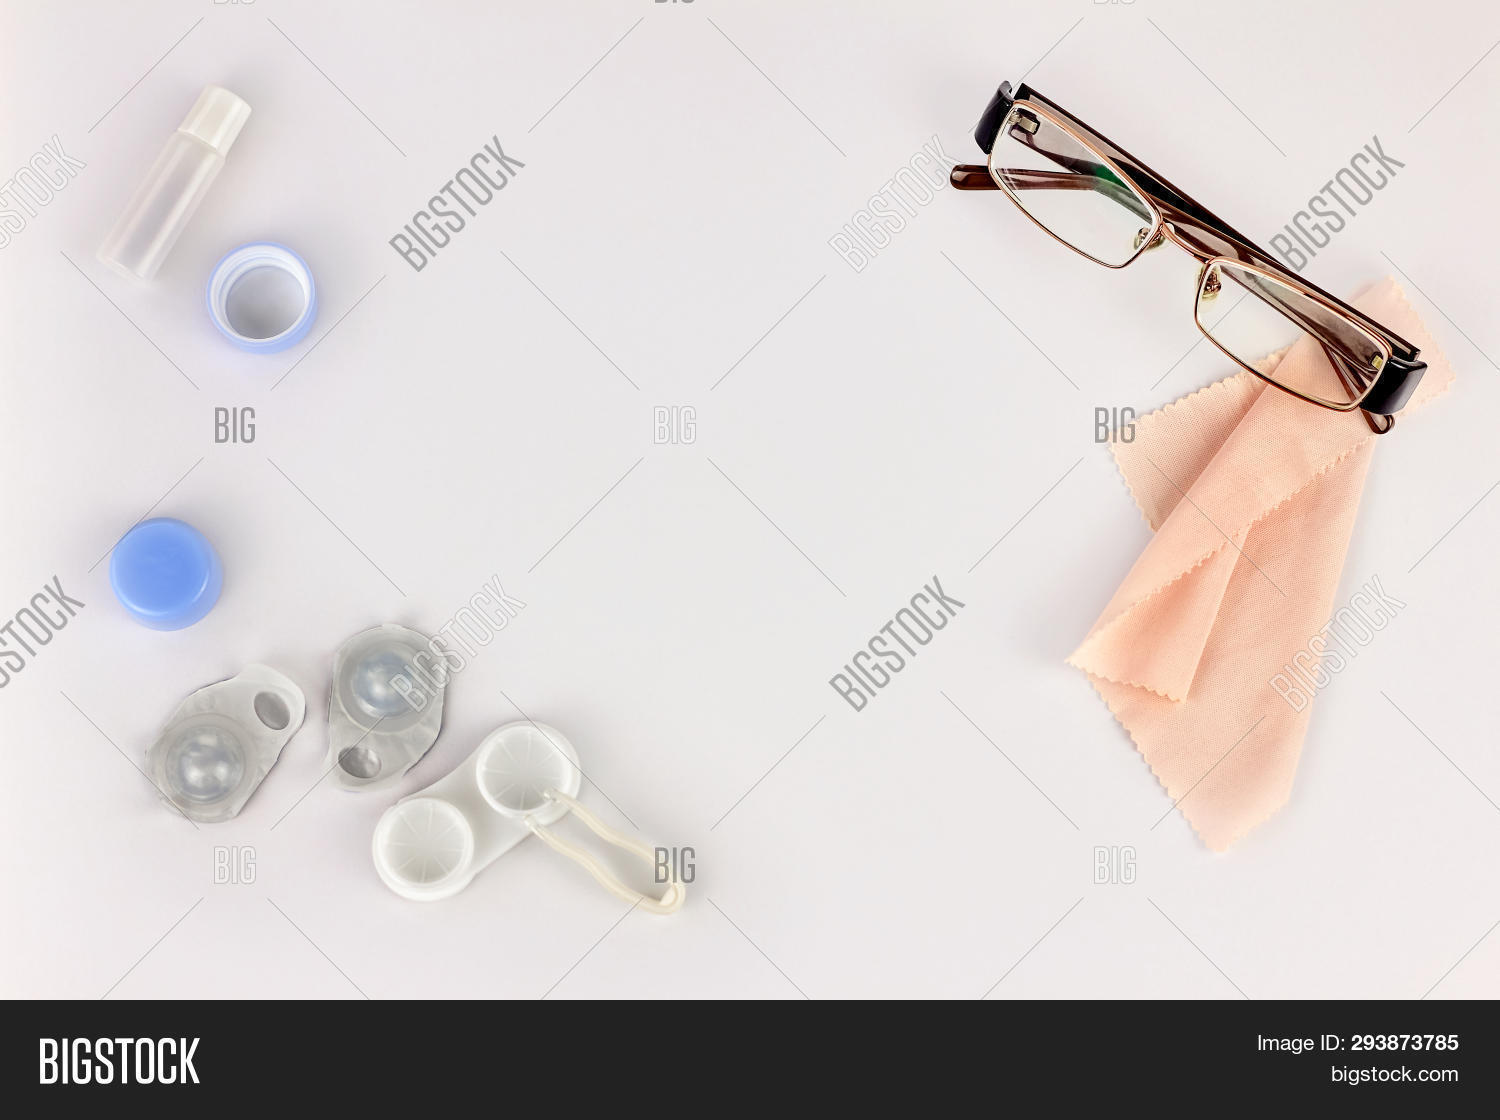 1ed9e4733dd Contact Lenses, Glasses And Accessories On White Background. Eye Health And  Care, Eyesight